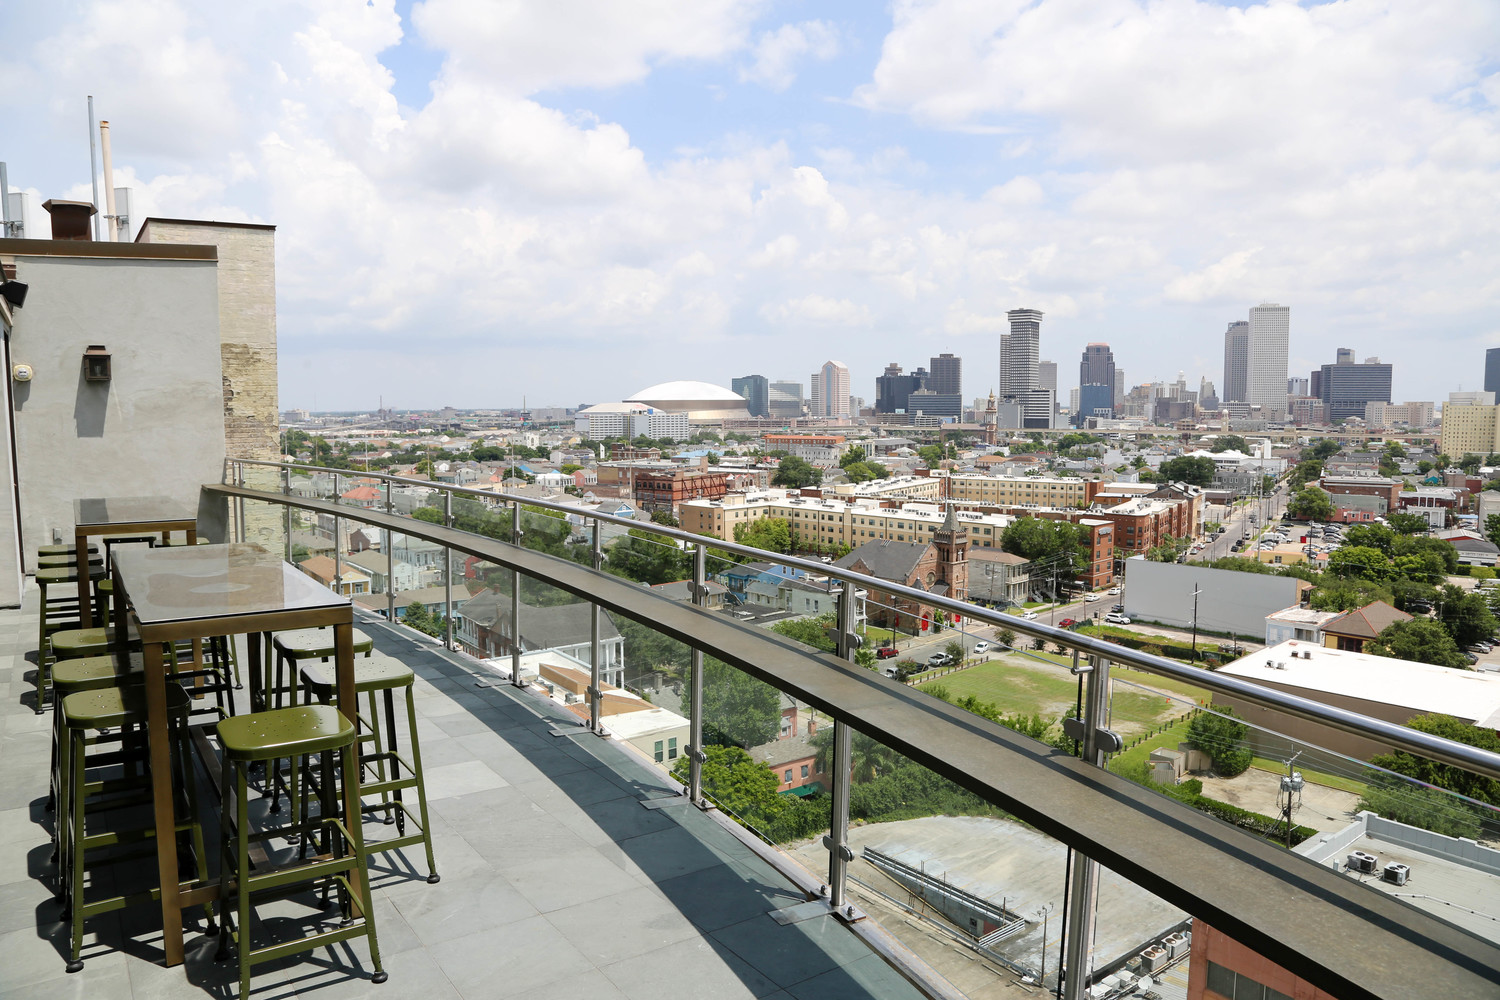 The Pontchartrain Hotel's Hot Tin has one of the city's best views of downtown. (Courtesy photo)